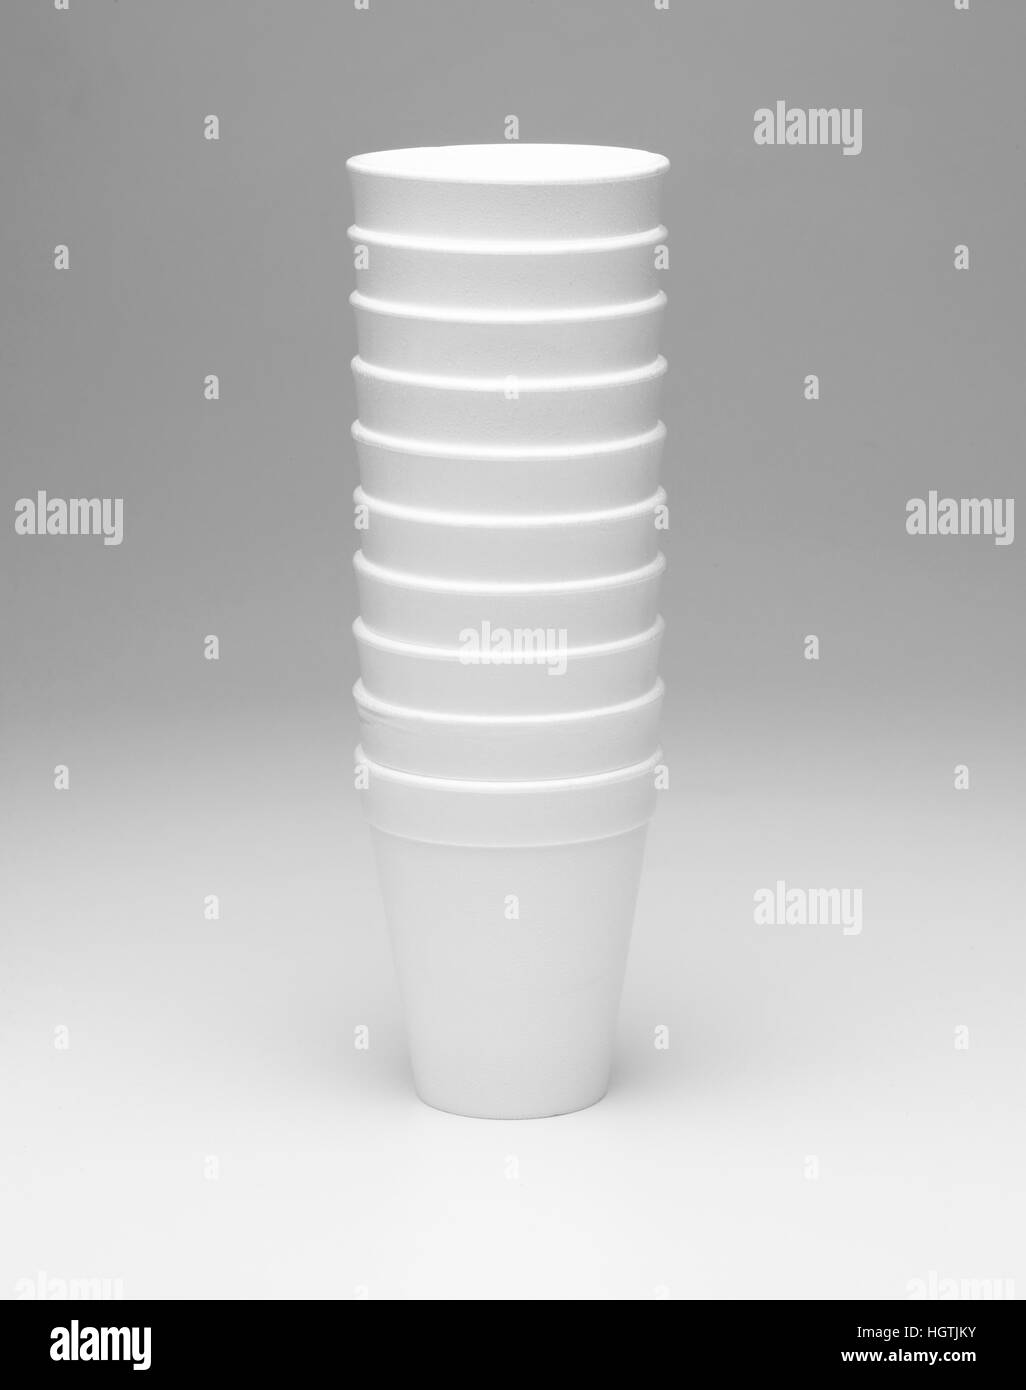 Styrofoam cup on a graduating neutral background - Stock Image